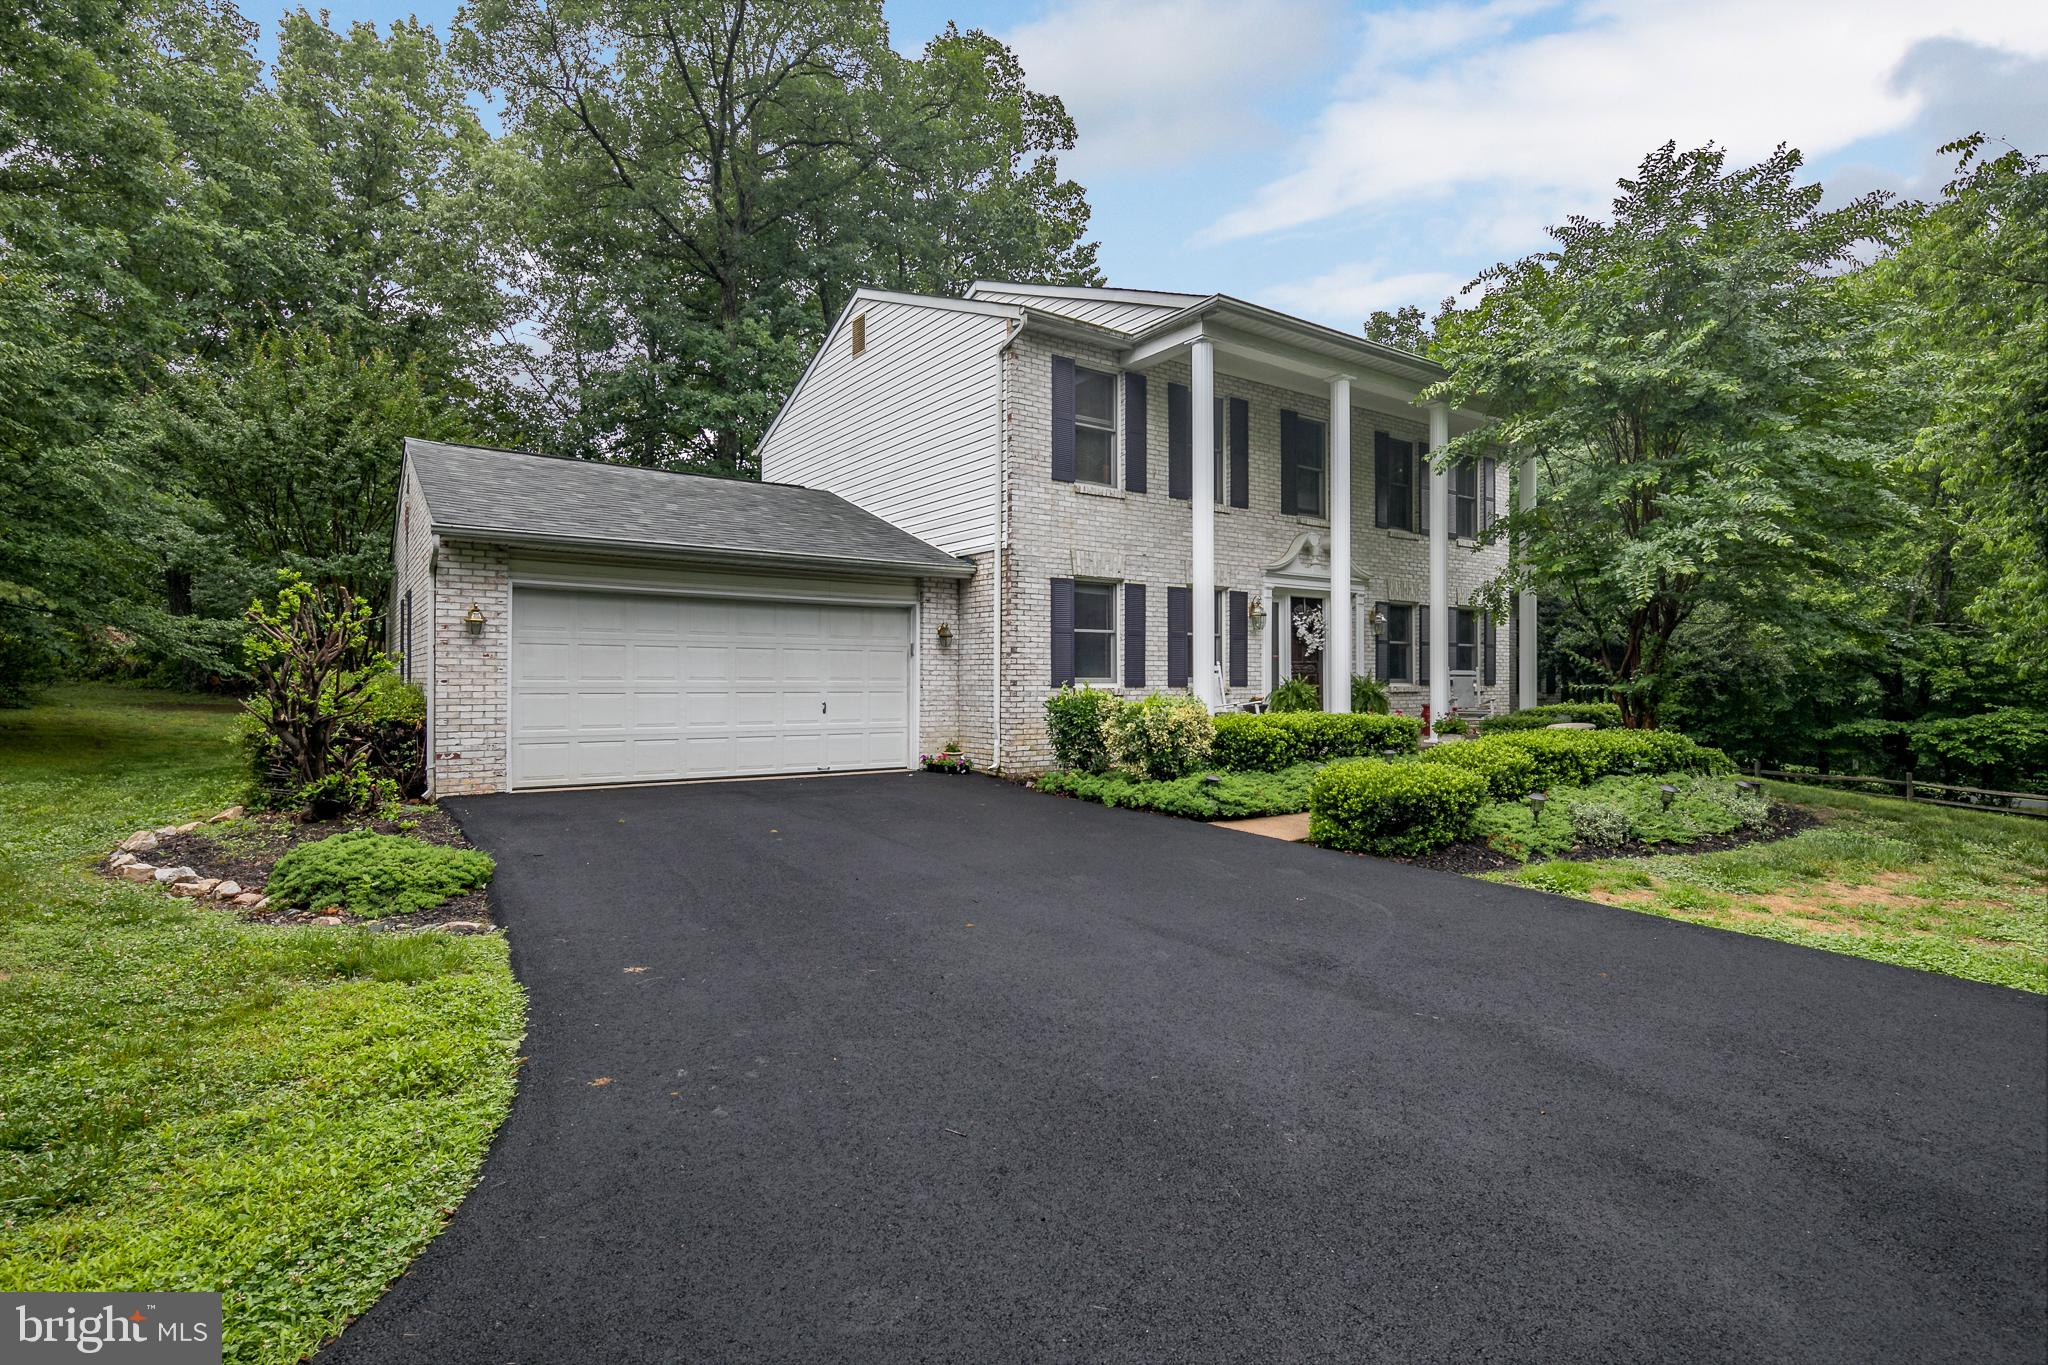 This stately colonial offers 4 spacious bedrooms, 2.5 baths, 2 car garage and room to grow in the basement. Beautiful hardwood floors in the formal living room, dining room and foyer. You will love the recently remodeled kitchen with granite a large center island and newer appliances. The kitchen extends to a huge eating area and oversized family room. A large master and 3 more spacious bedrooms on the upper level. Enjoy the deck over looking the private back yard. Original owners selling the formerl model.  Upgrades include new paved driveway, new roof in 2016, newer HVAC, Hot water heater, newer dishwasher, freshly painted exterior,